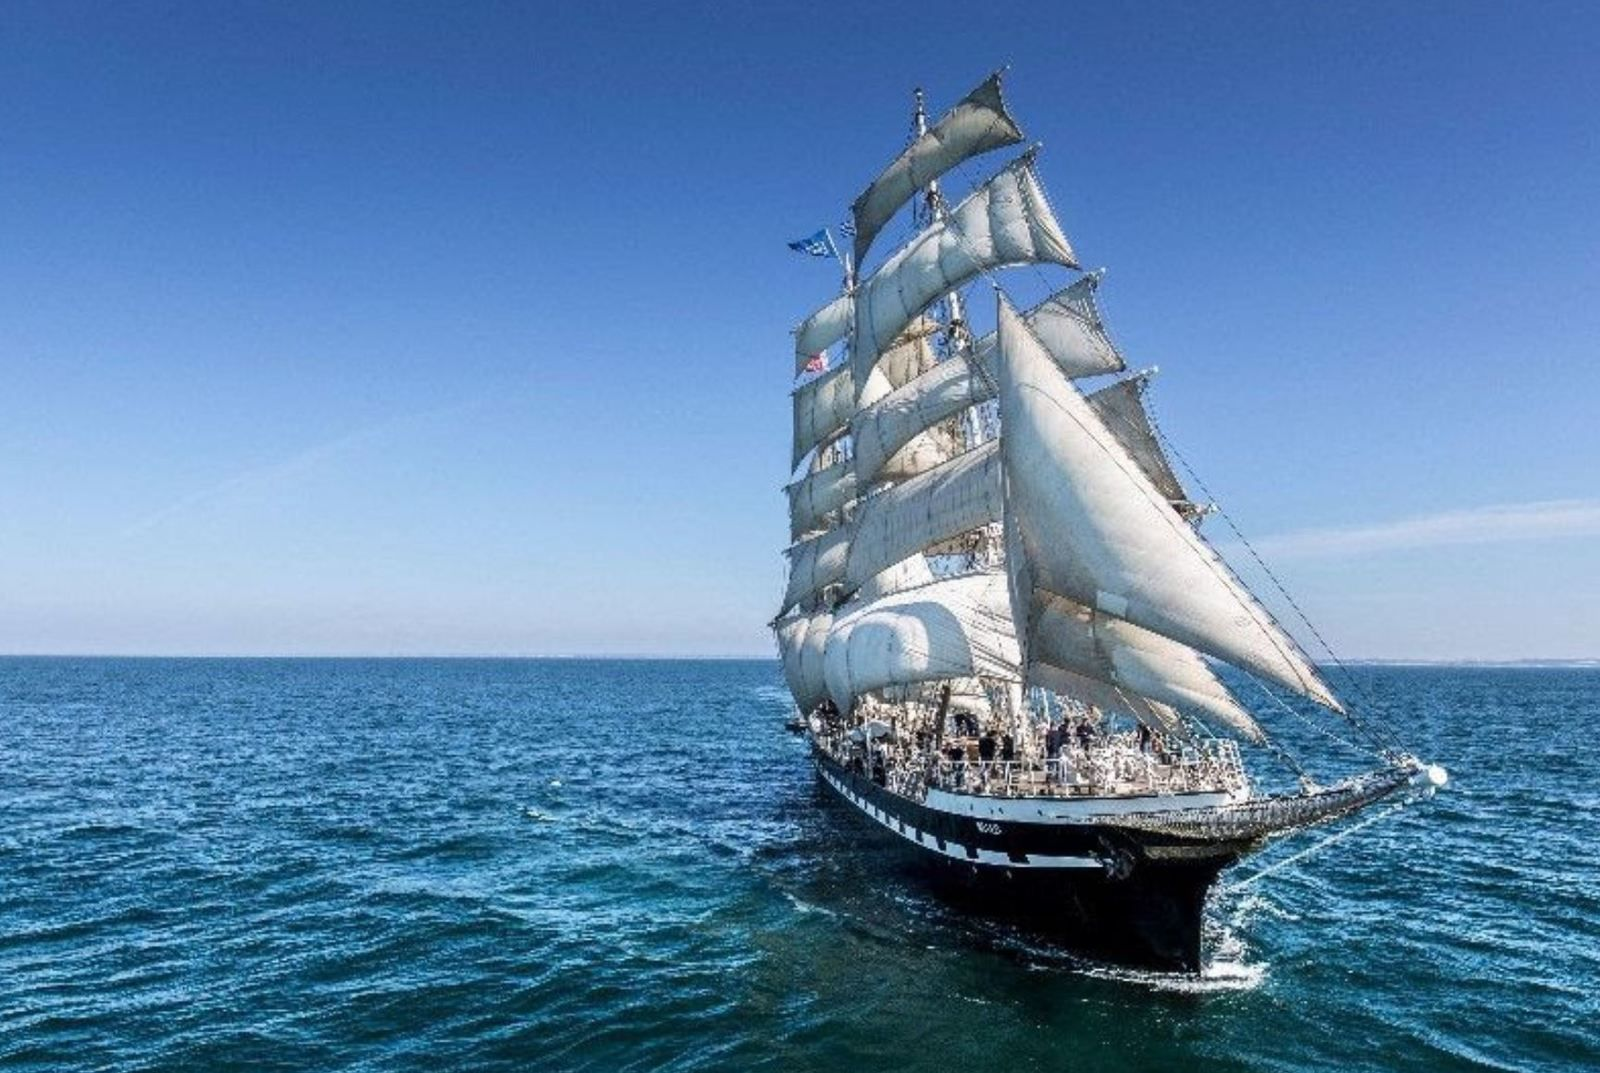 No sailing for the Belem in 2020